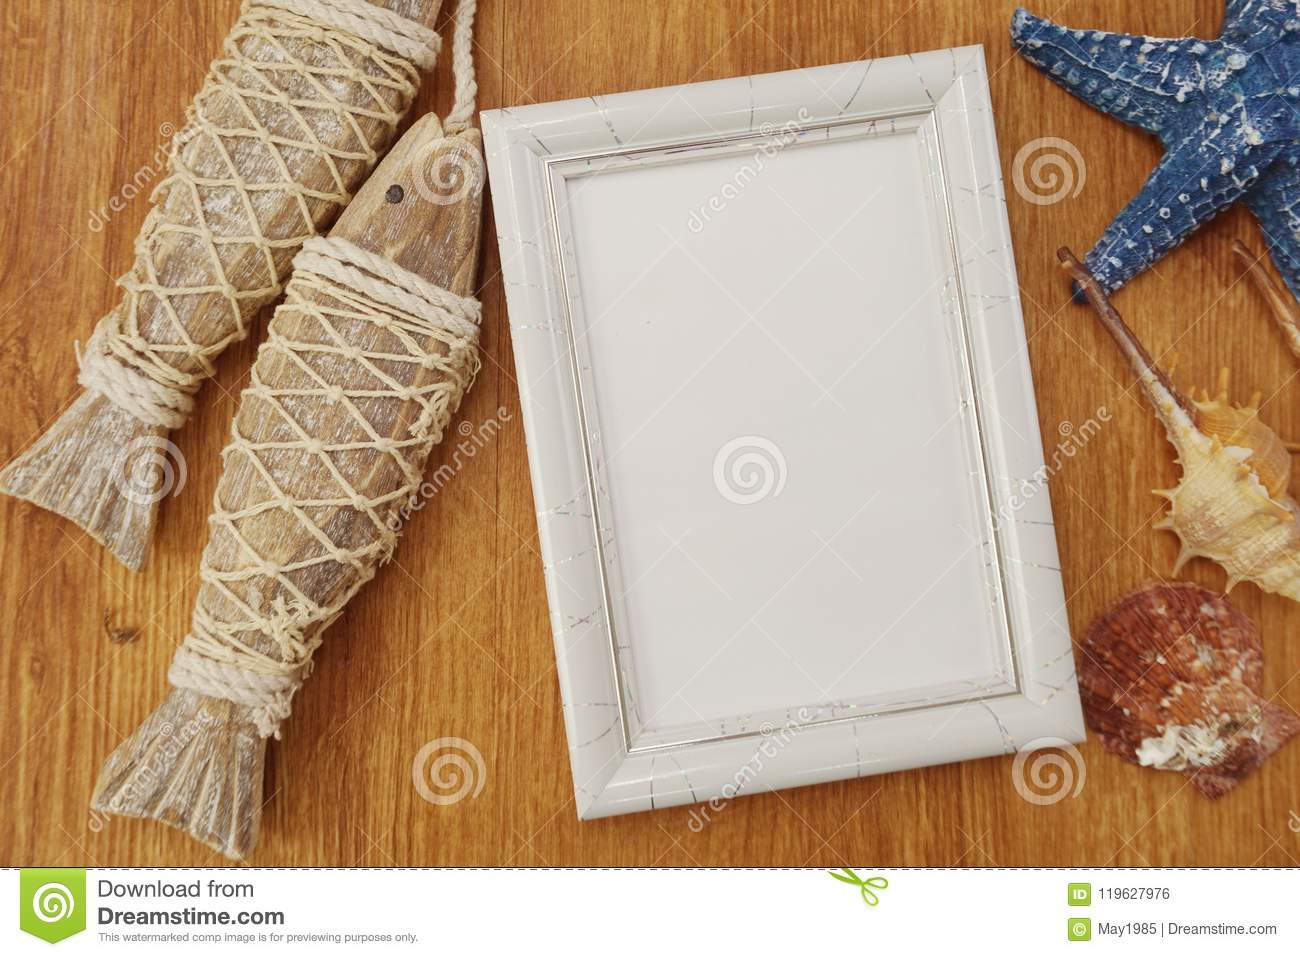 Summer navy background, photo frame and various marine design elements